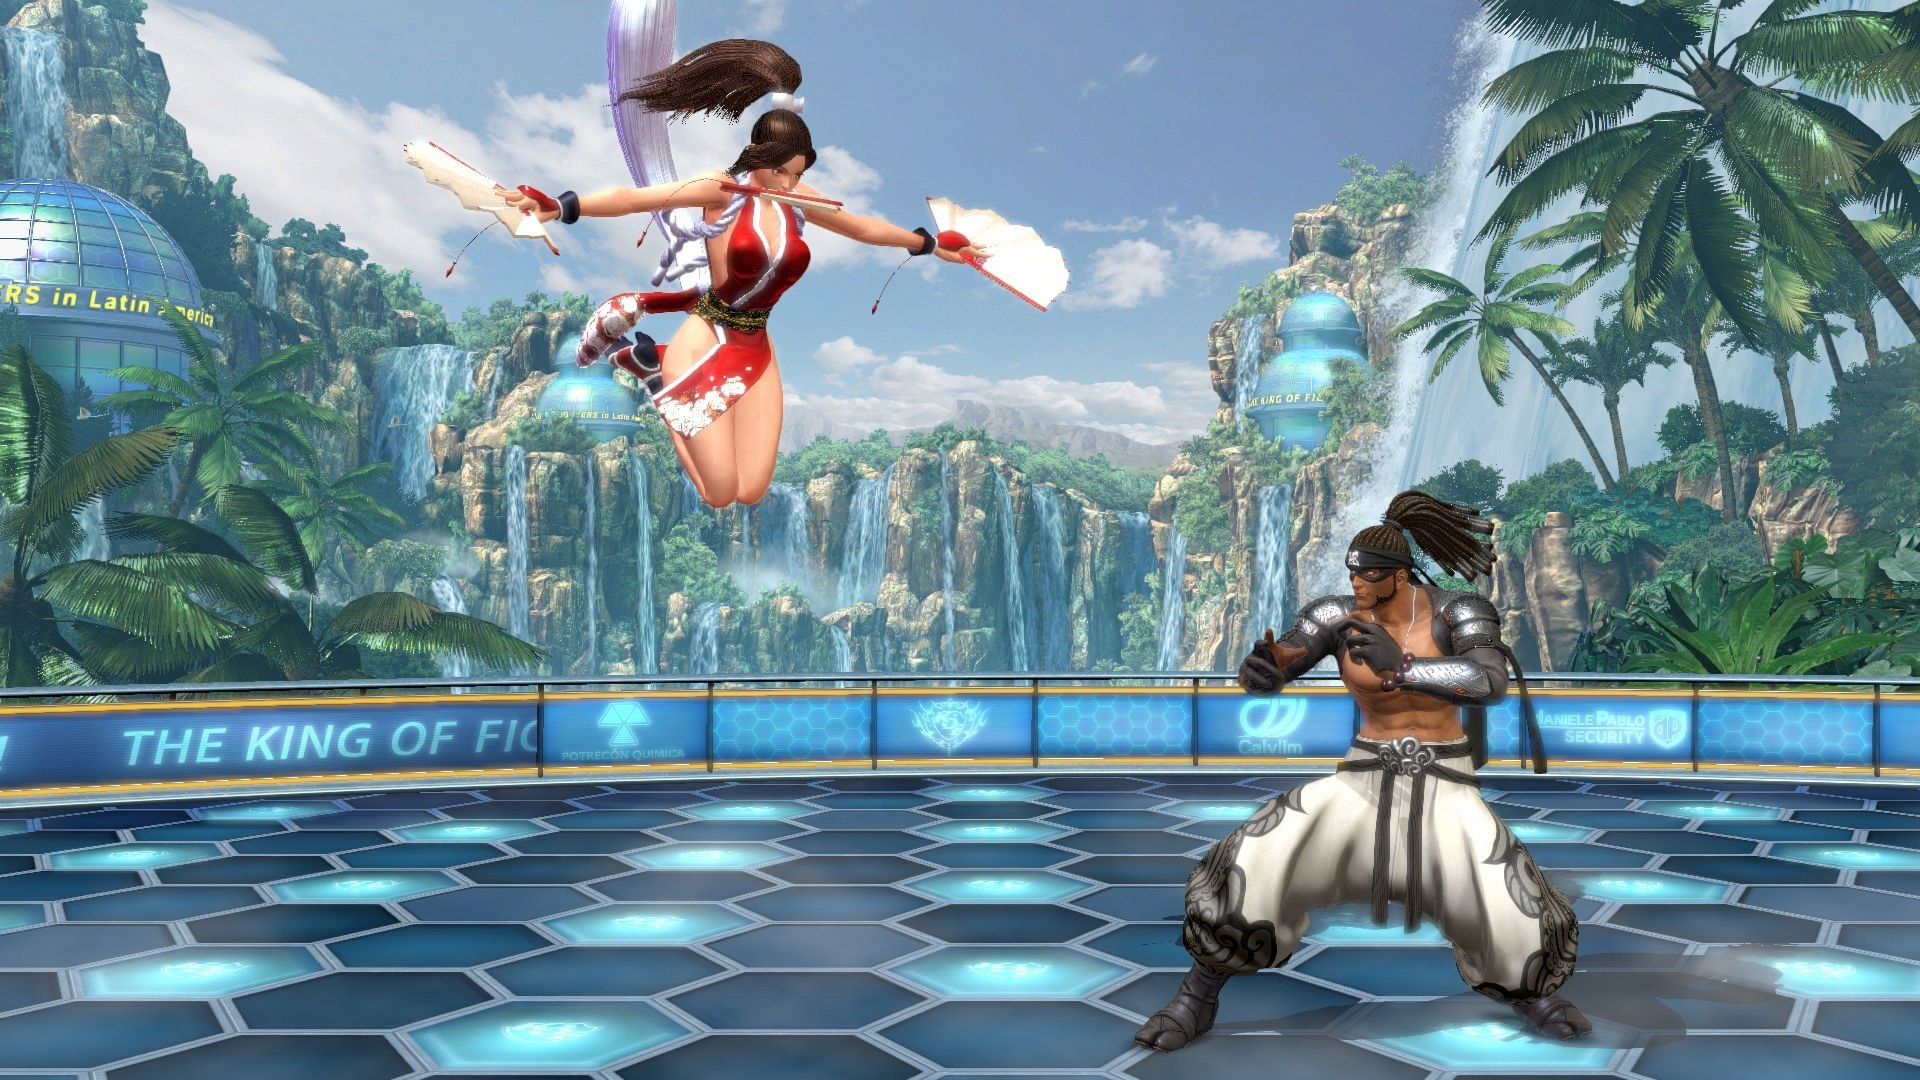 king_of_fighters_xiv-3371189.jpg